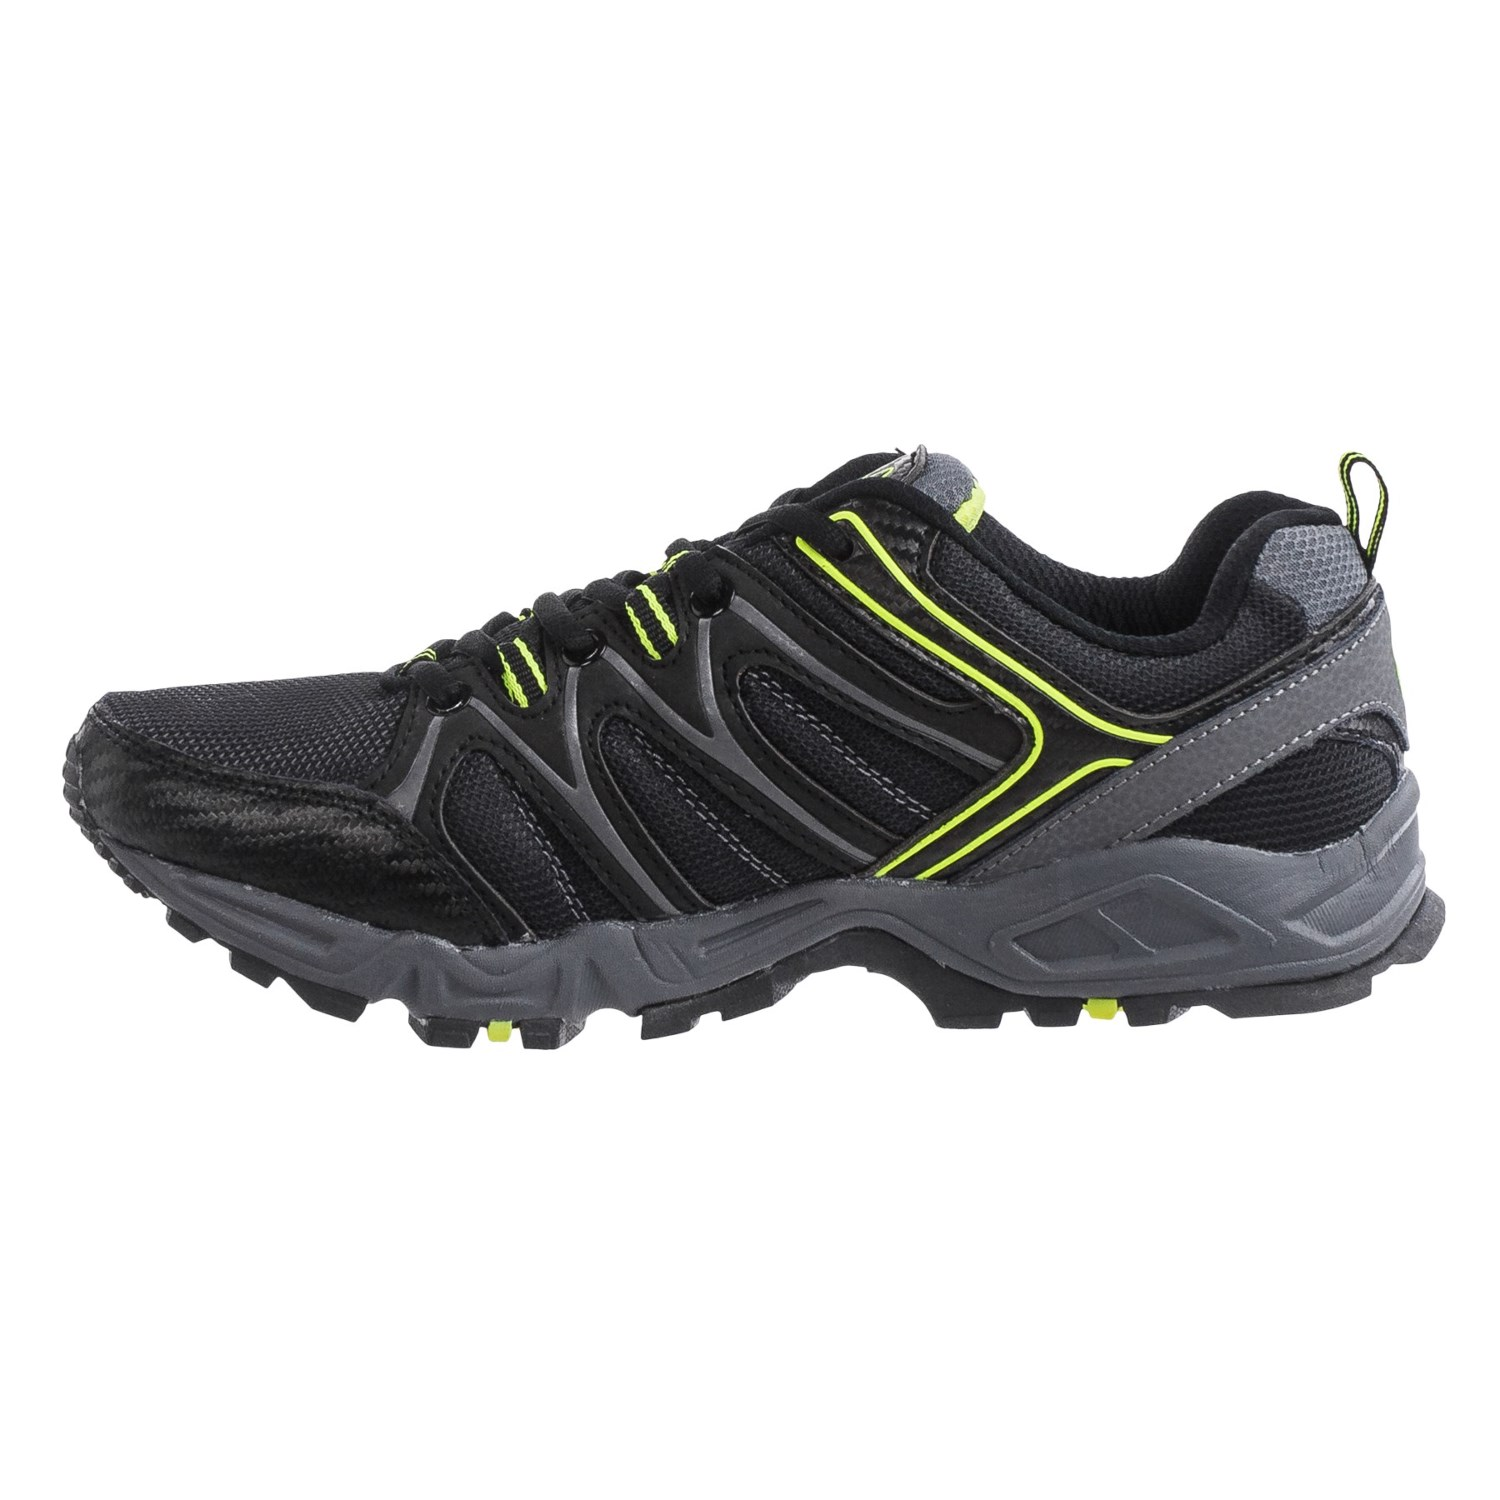 Fila Open Road 2 Trail Running Shoes (For Men) - Save 60%